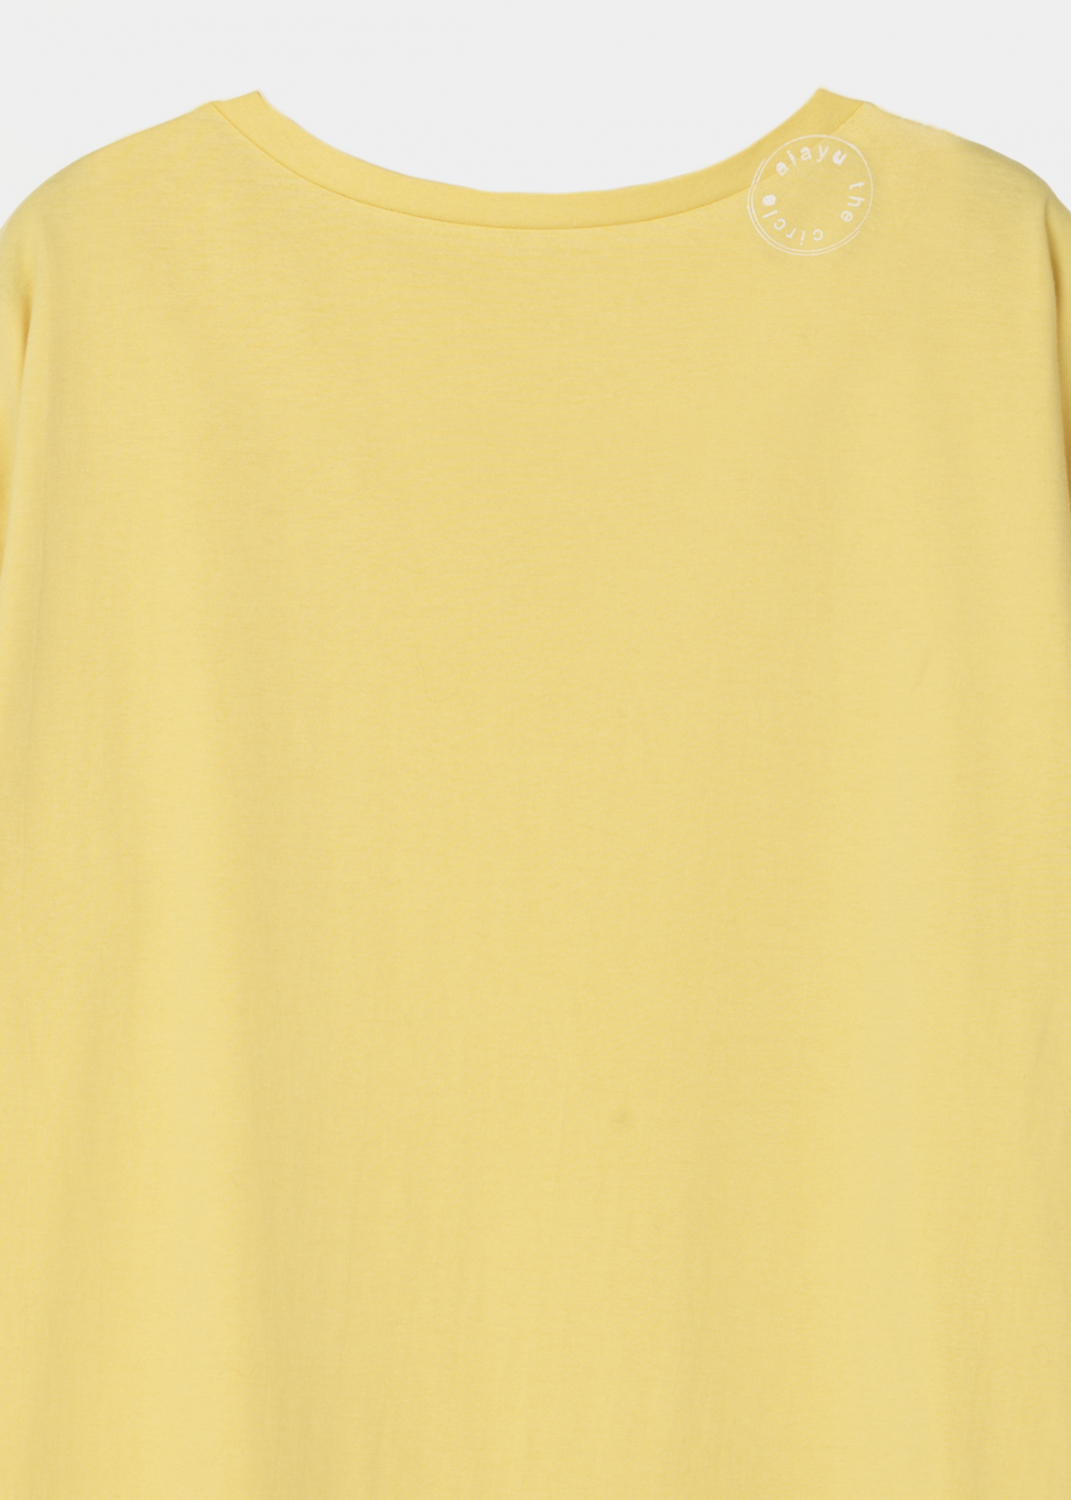 The Circle Collection - Circle Logo Tee Dress Thumbnail